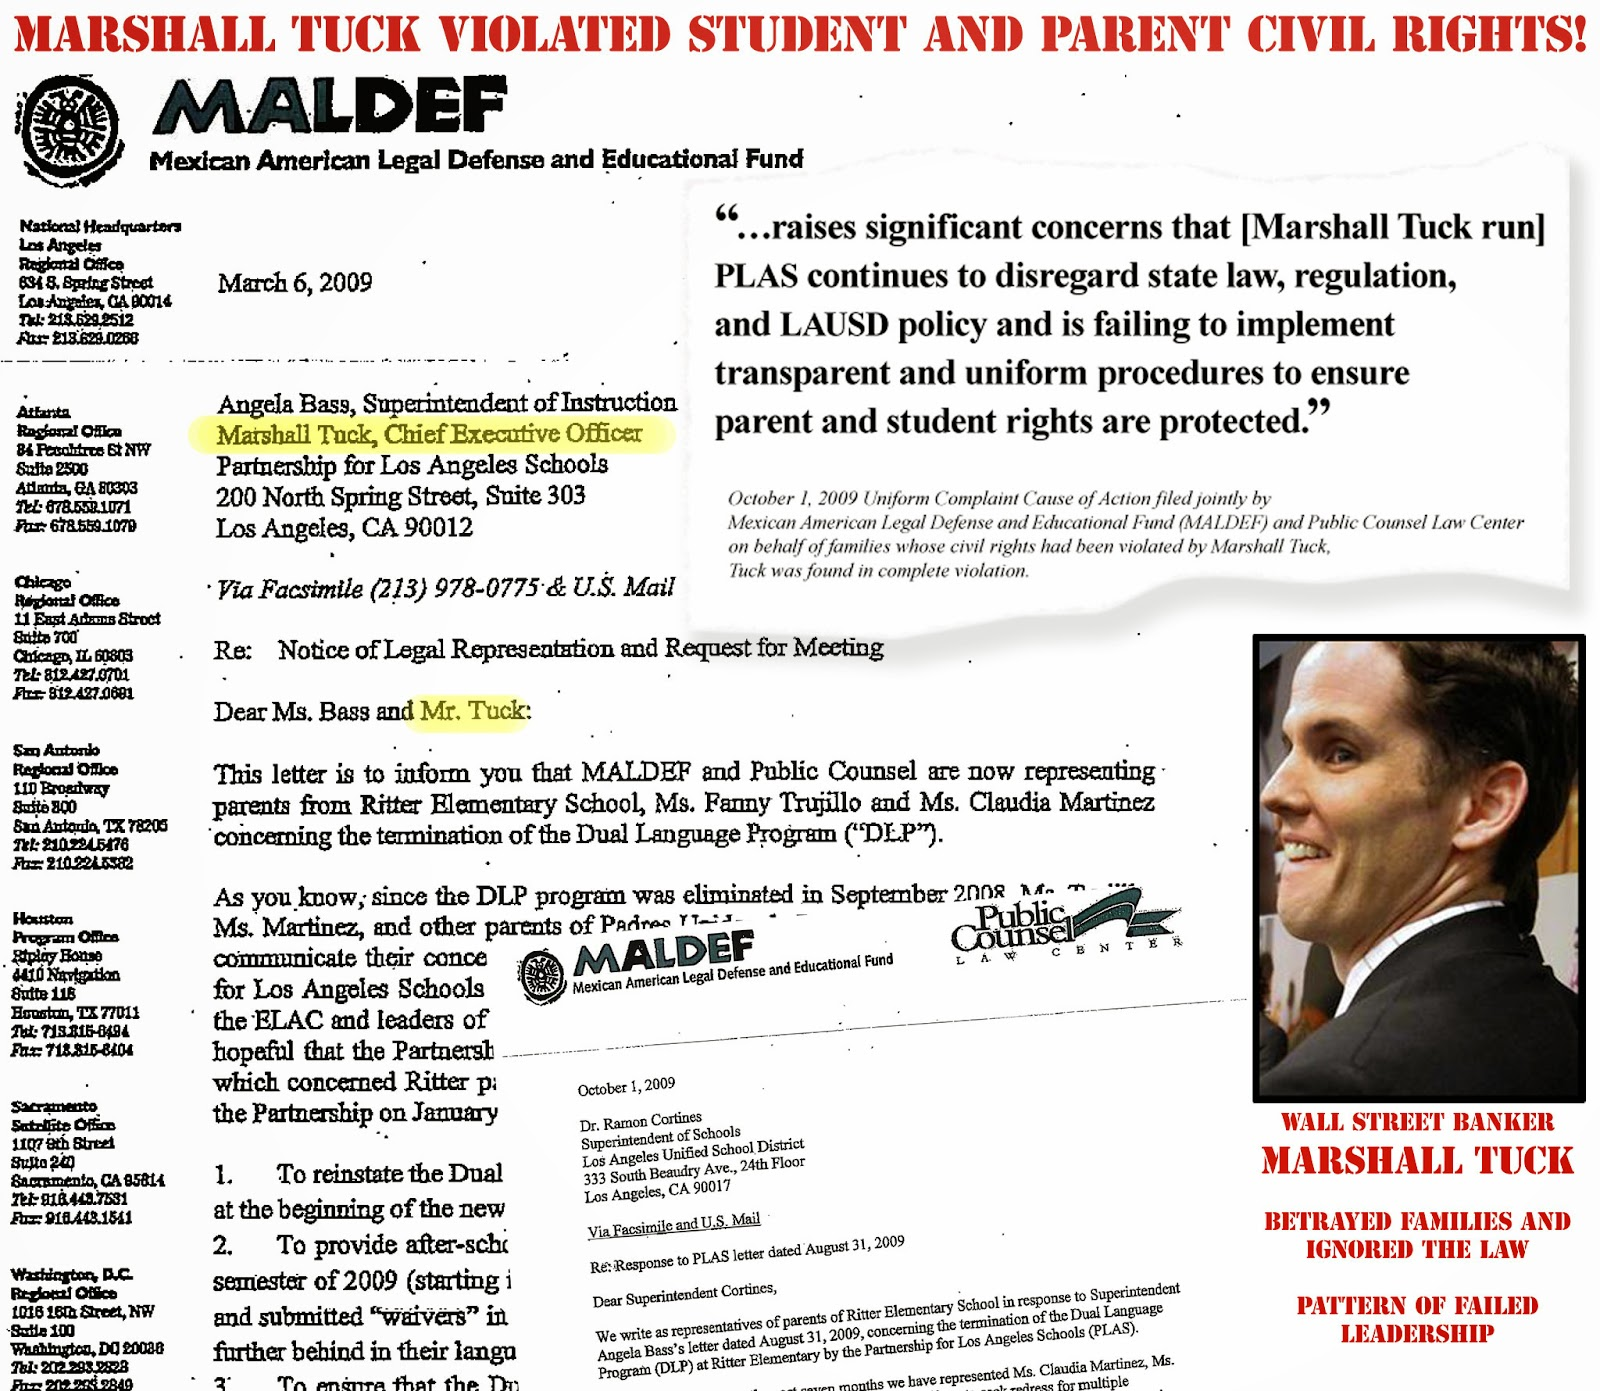 Smoking Gun! Wall Street Banker Marshall Tuck violated student and parent's civil rights!